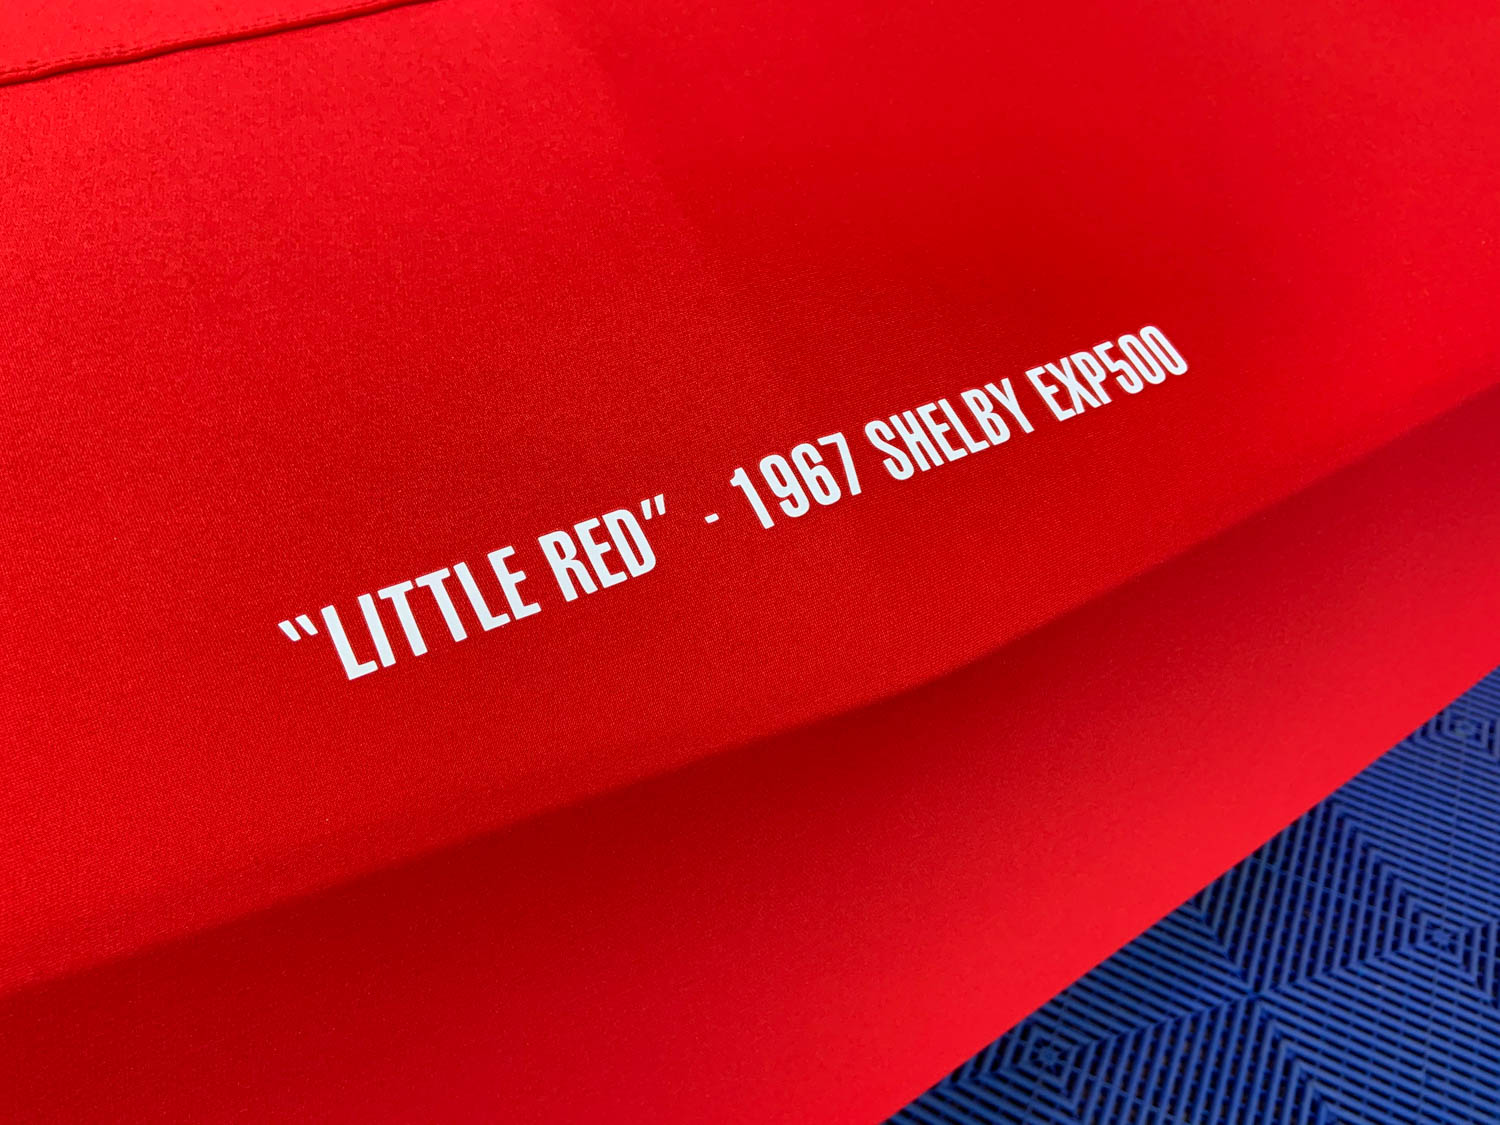 Little Red unveiled